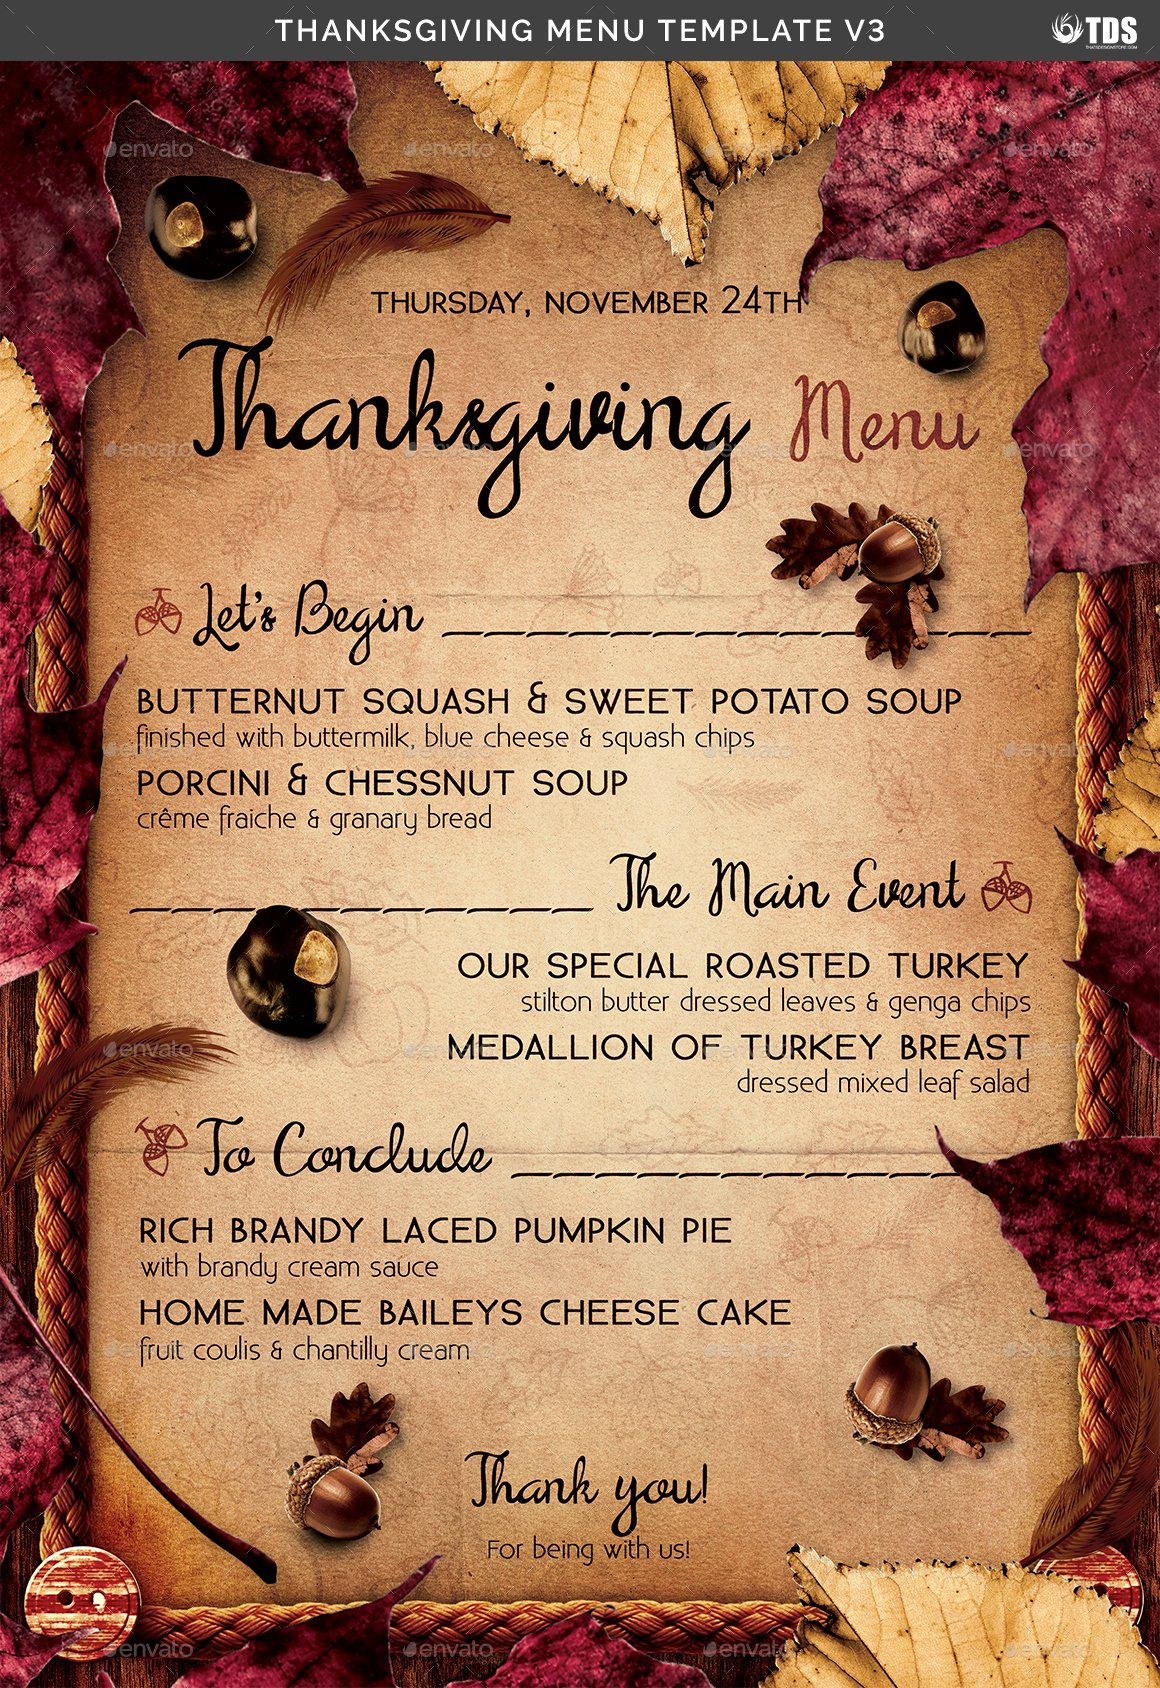 Thanksgiving Dinner Menu Template Unique Thanksgiving Menu Template V3 by Lou606